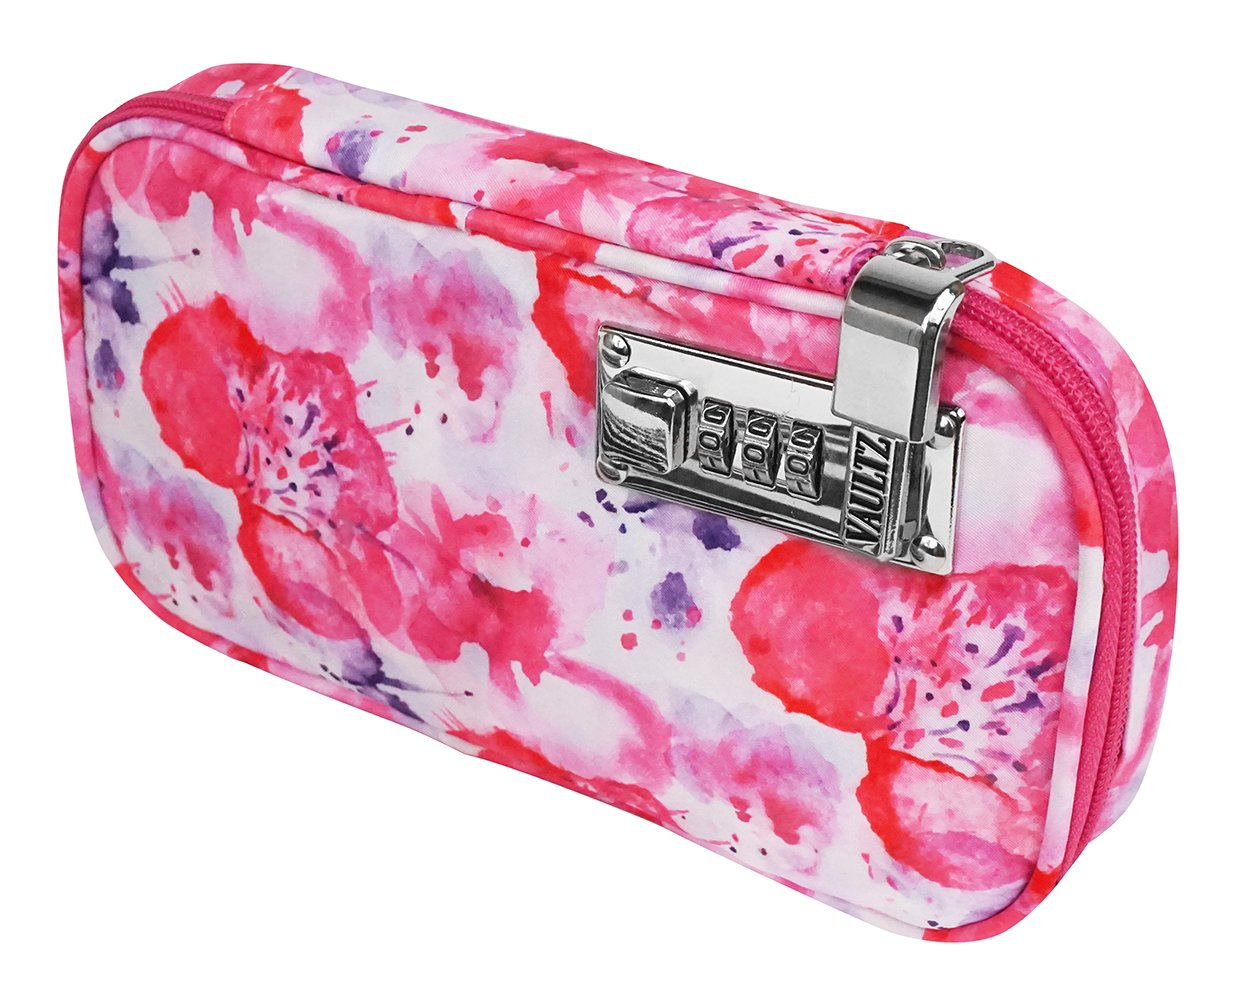 Vaultz VZ03804 Locking Large Travel Jewelry Case, Soft-Sided Organizer with Combination Lock, 5 x 1.5 x 9 Inches, Floral